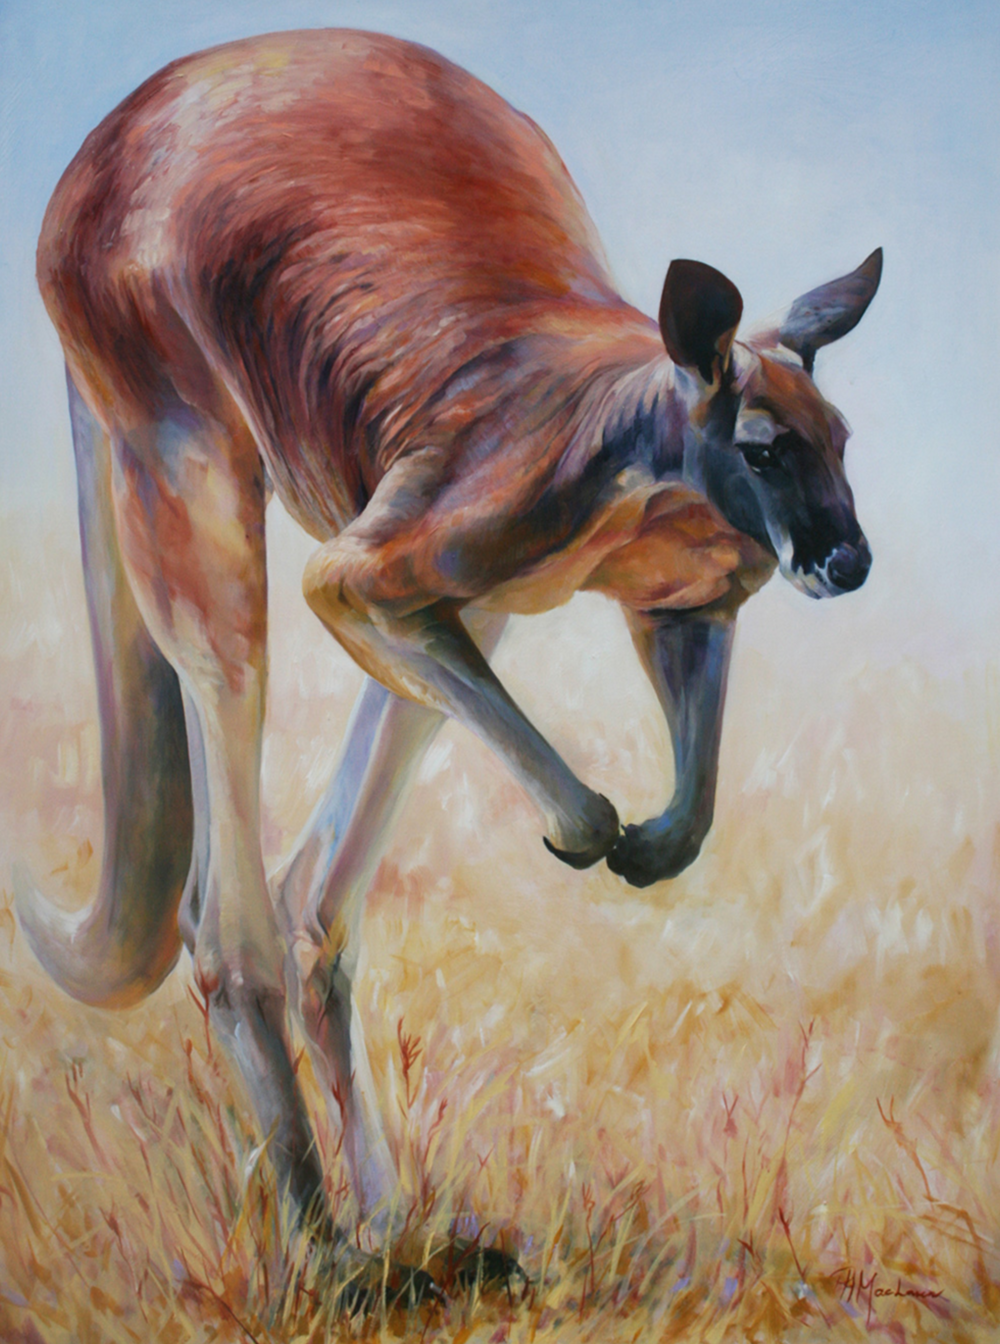 'Big Red'. Oil on canvas. 91 x 117cm.